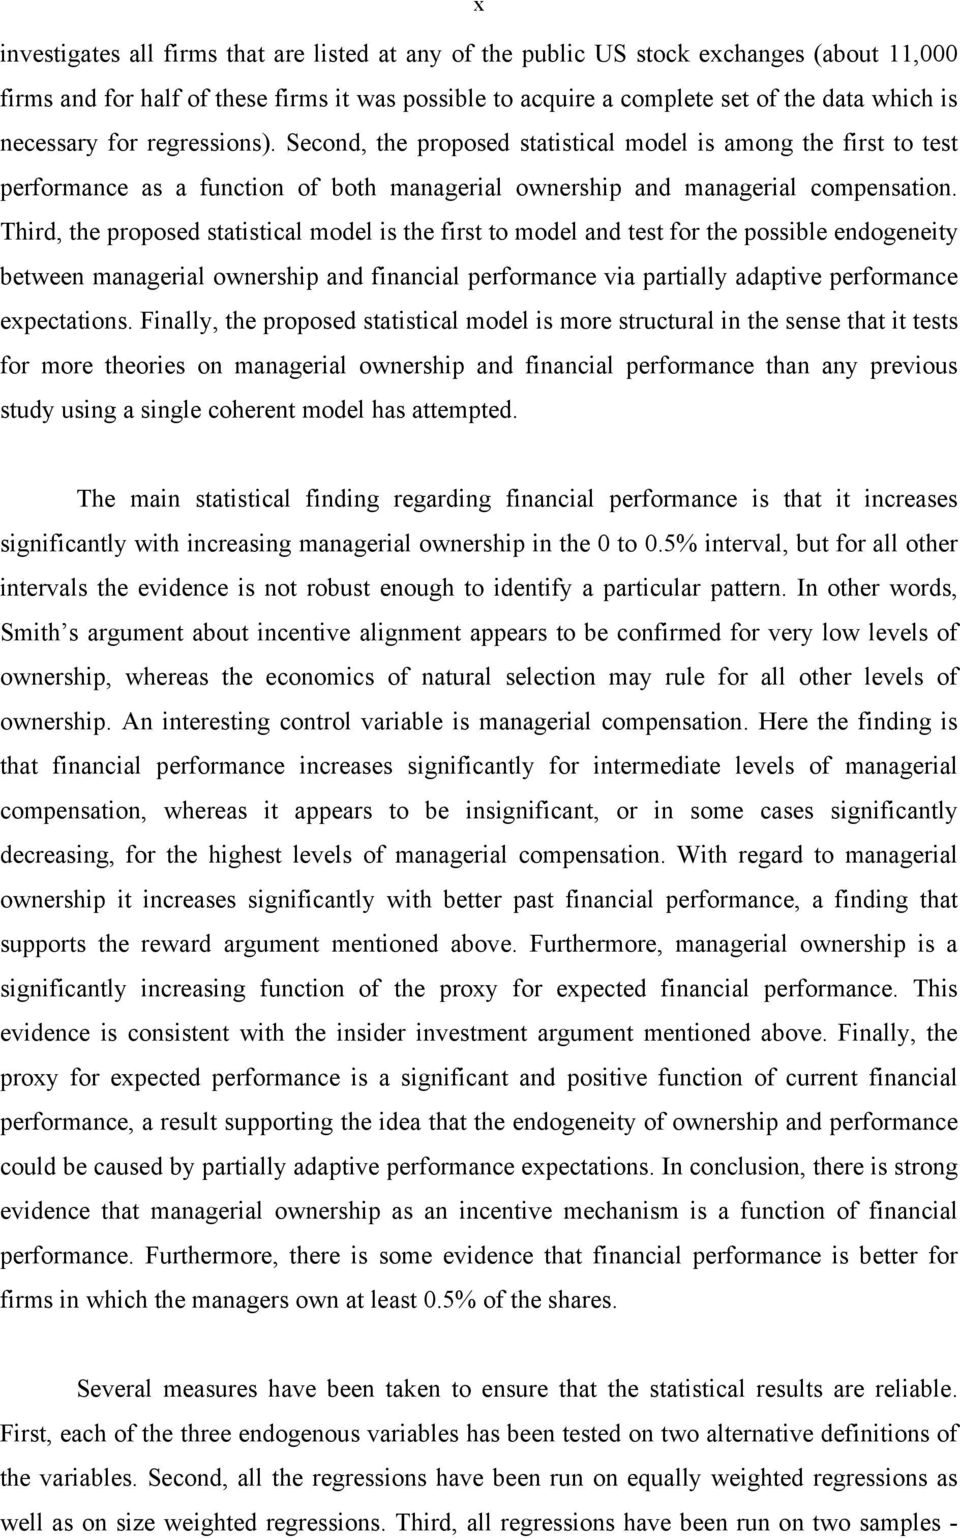 Third, the proposed statistical model is the first to model and test for the possible endogeneity between managerial ownership and financial performance via partially adaptive performance